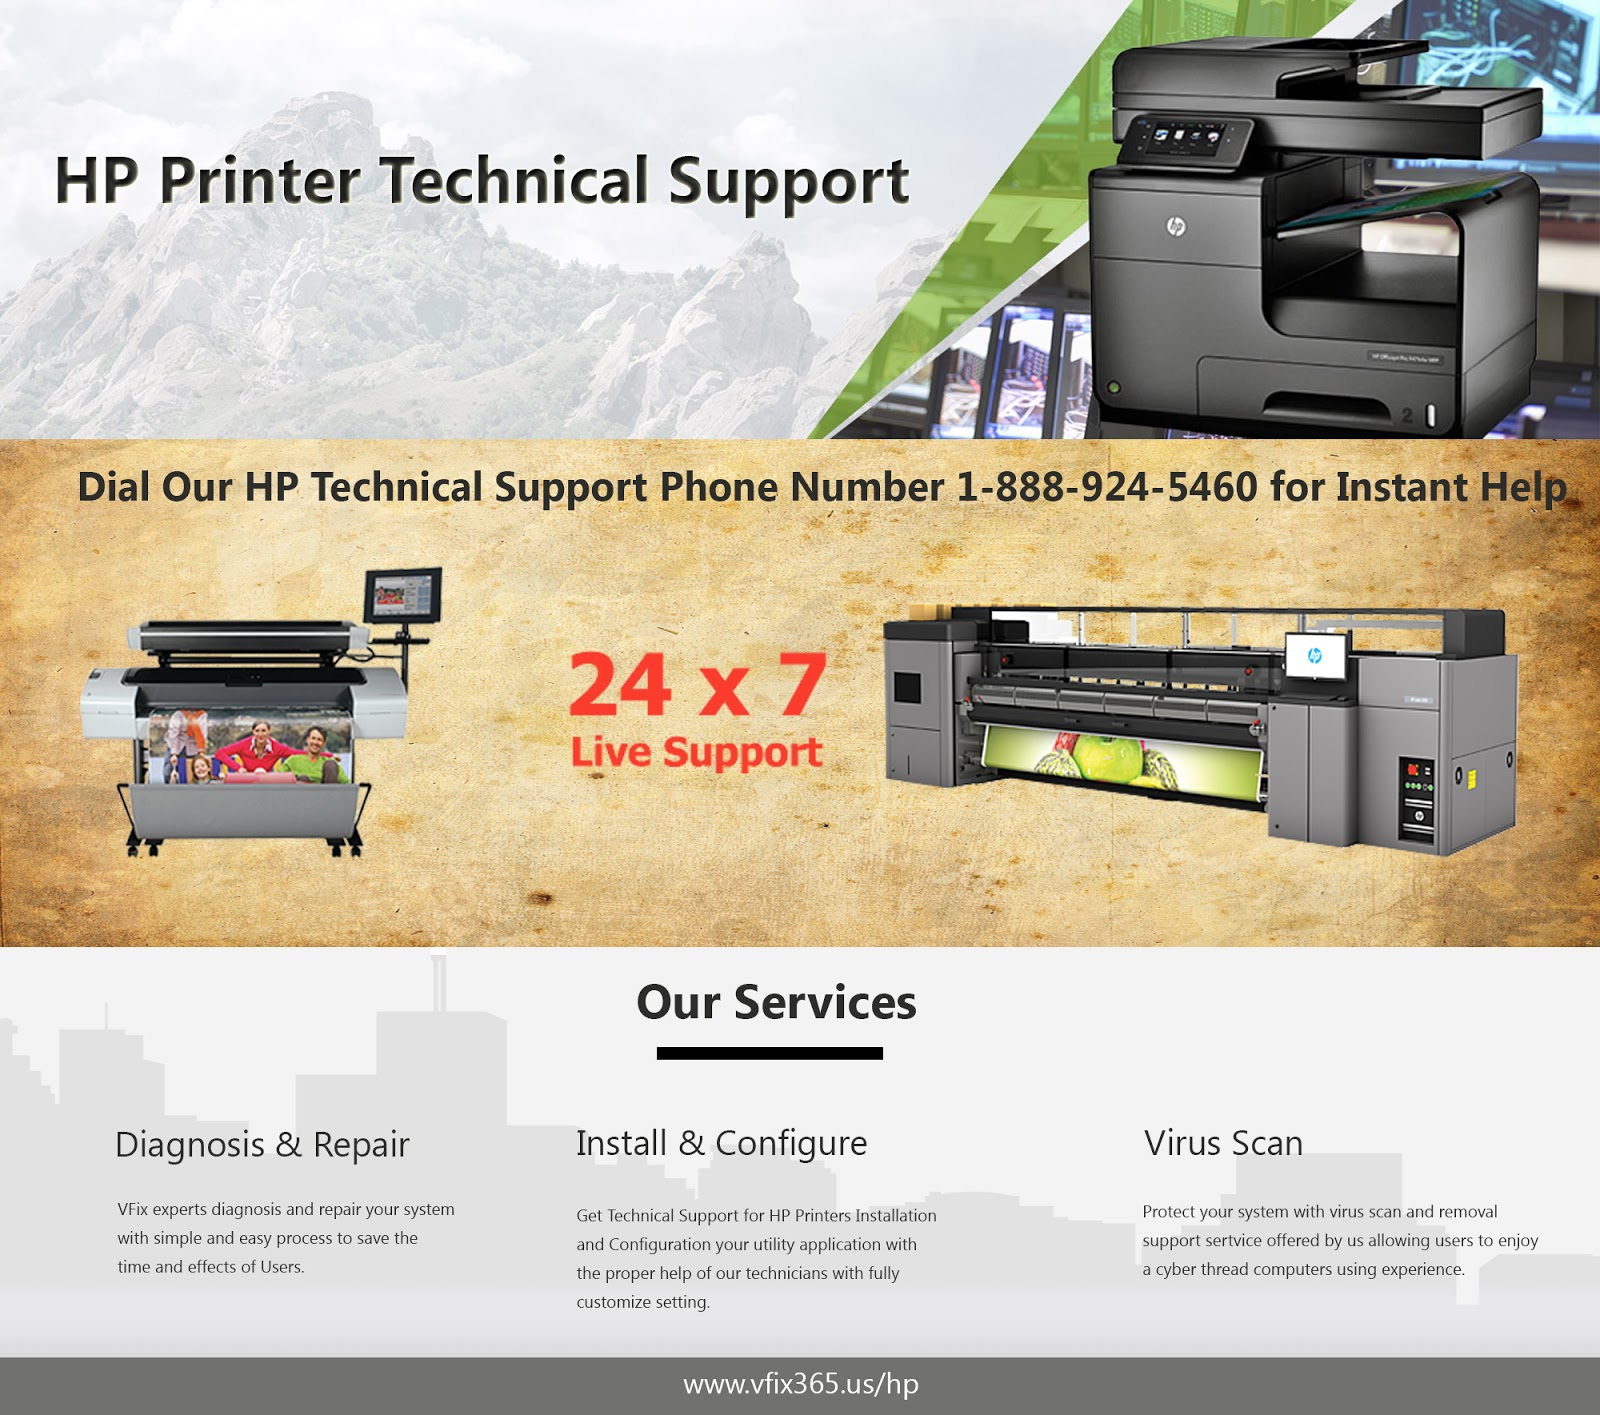 HP Printer Technical Support | Toll Free:1-888-924-5460